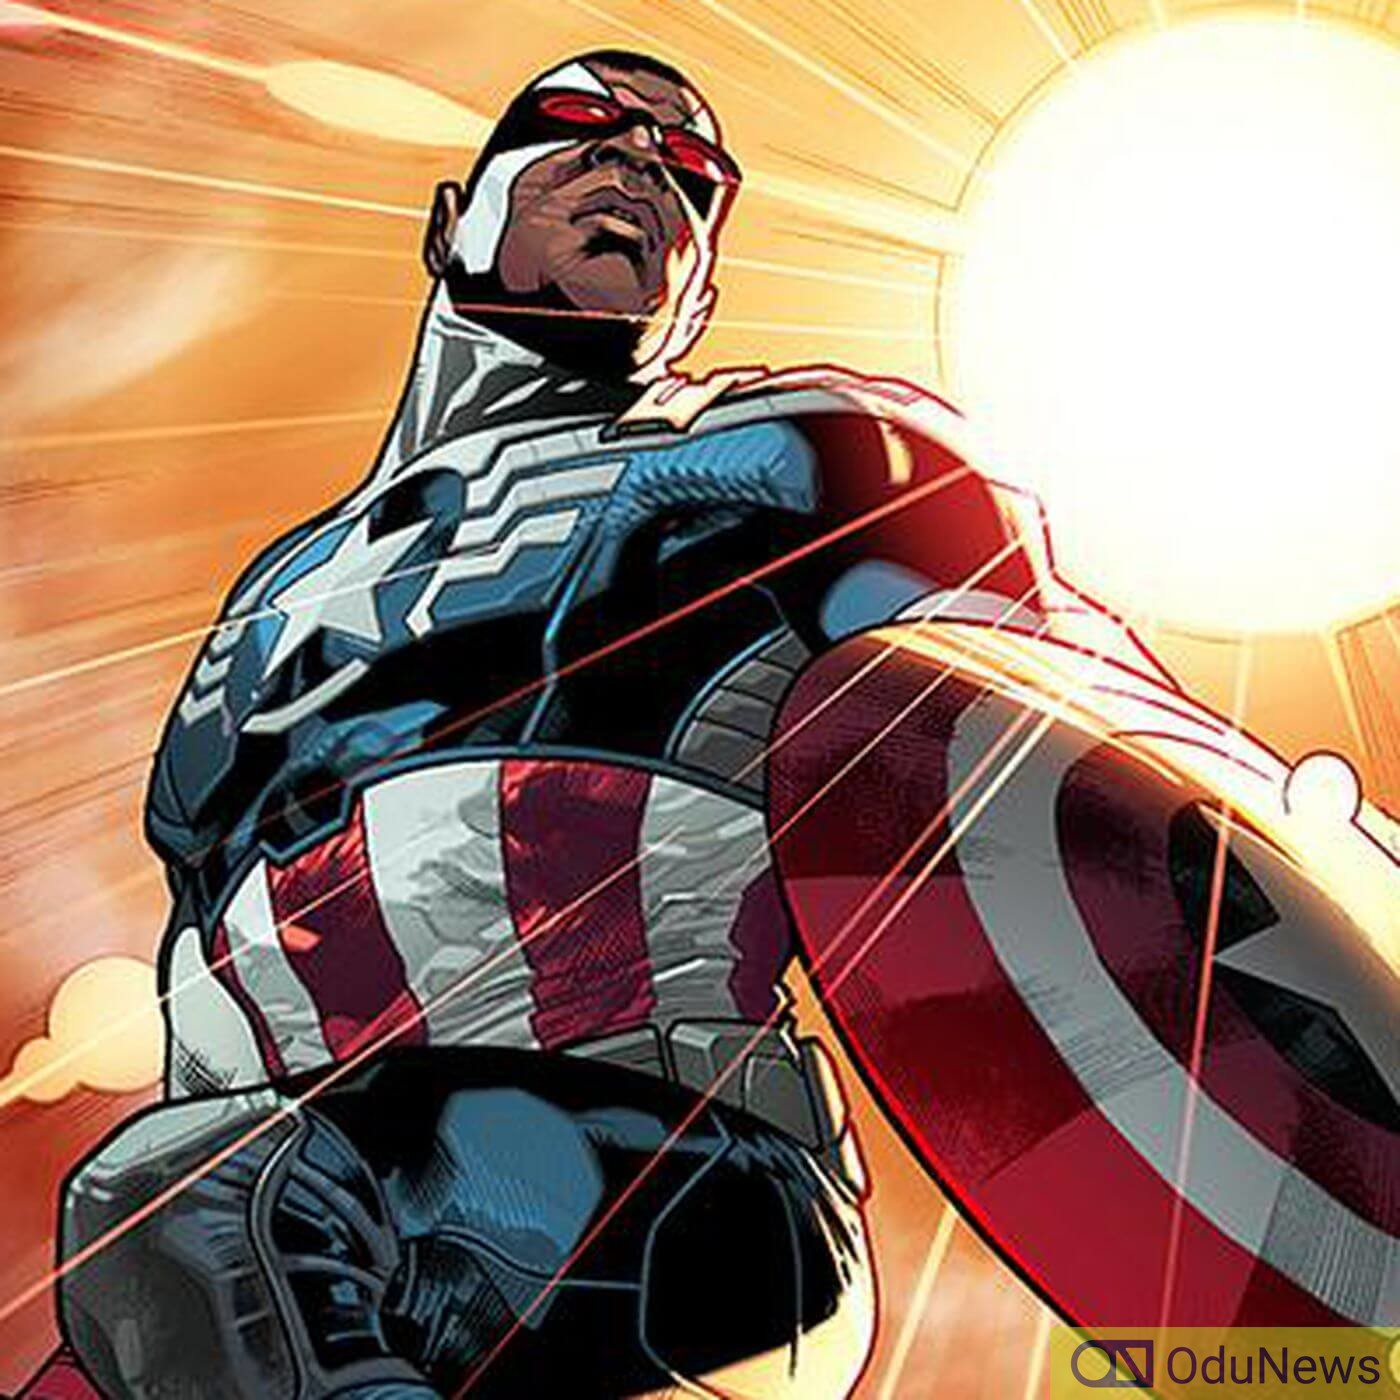 The original Captain America named Isaiah Bradley will reportedly be seen in the series